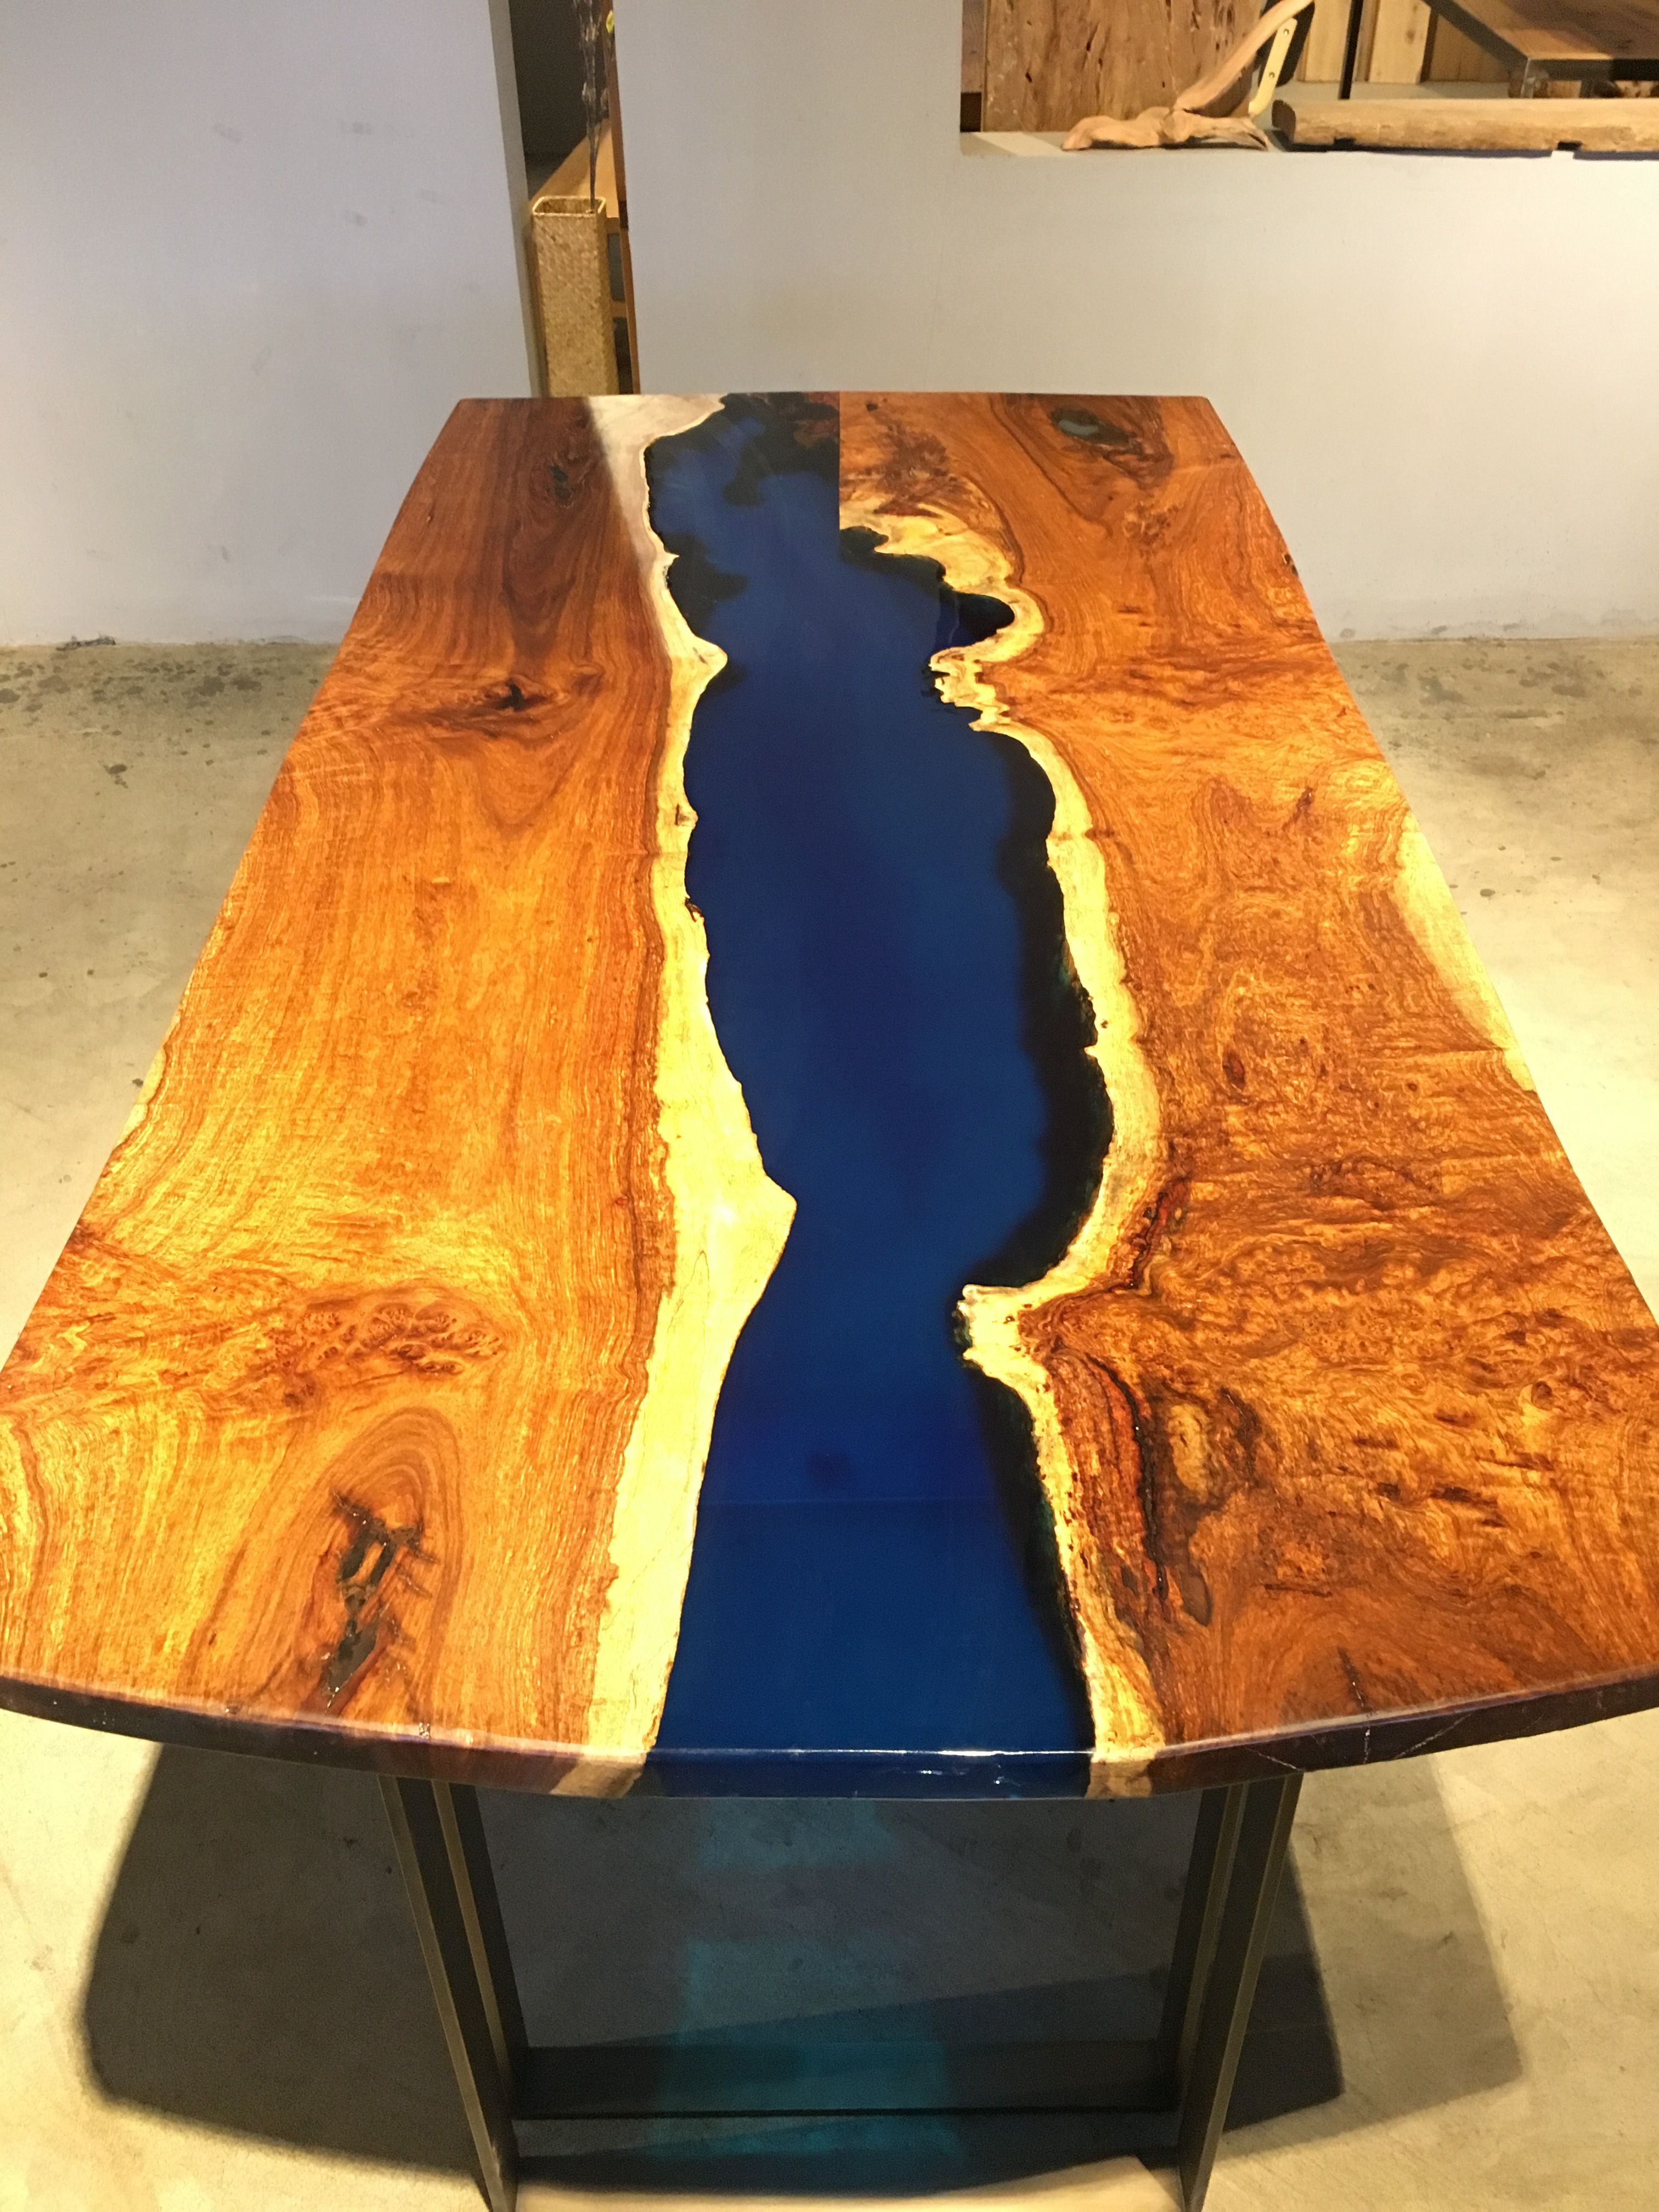 wechat :easy7life | Epoxy resin wood table | Pinterest | Resin ... for Epoxy Resin Wood Art  279cpg